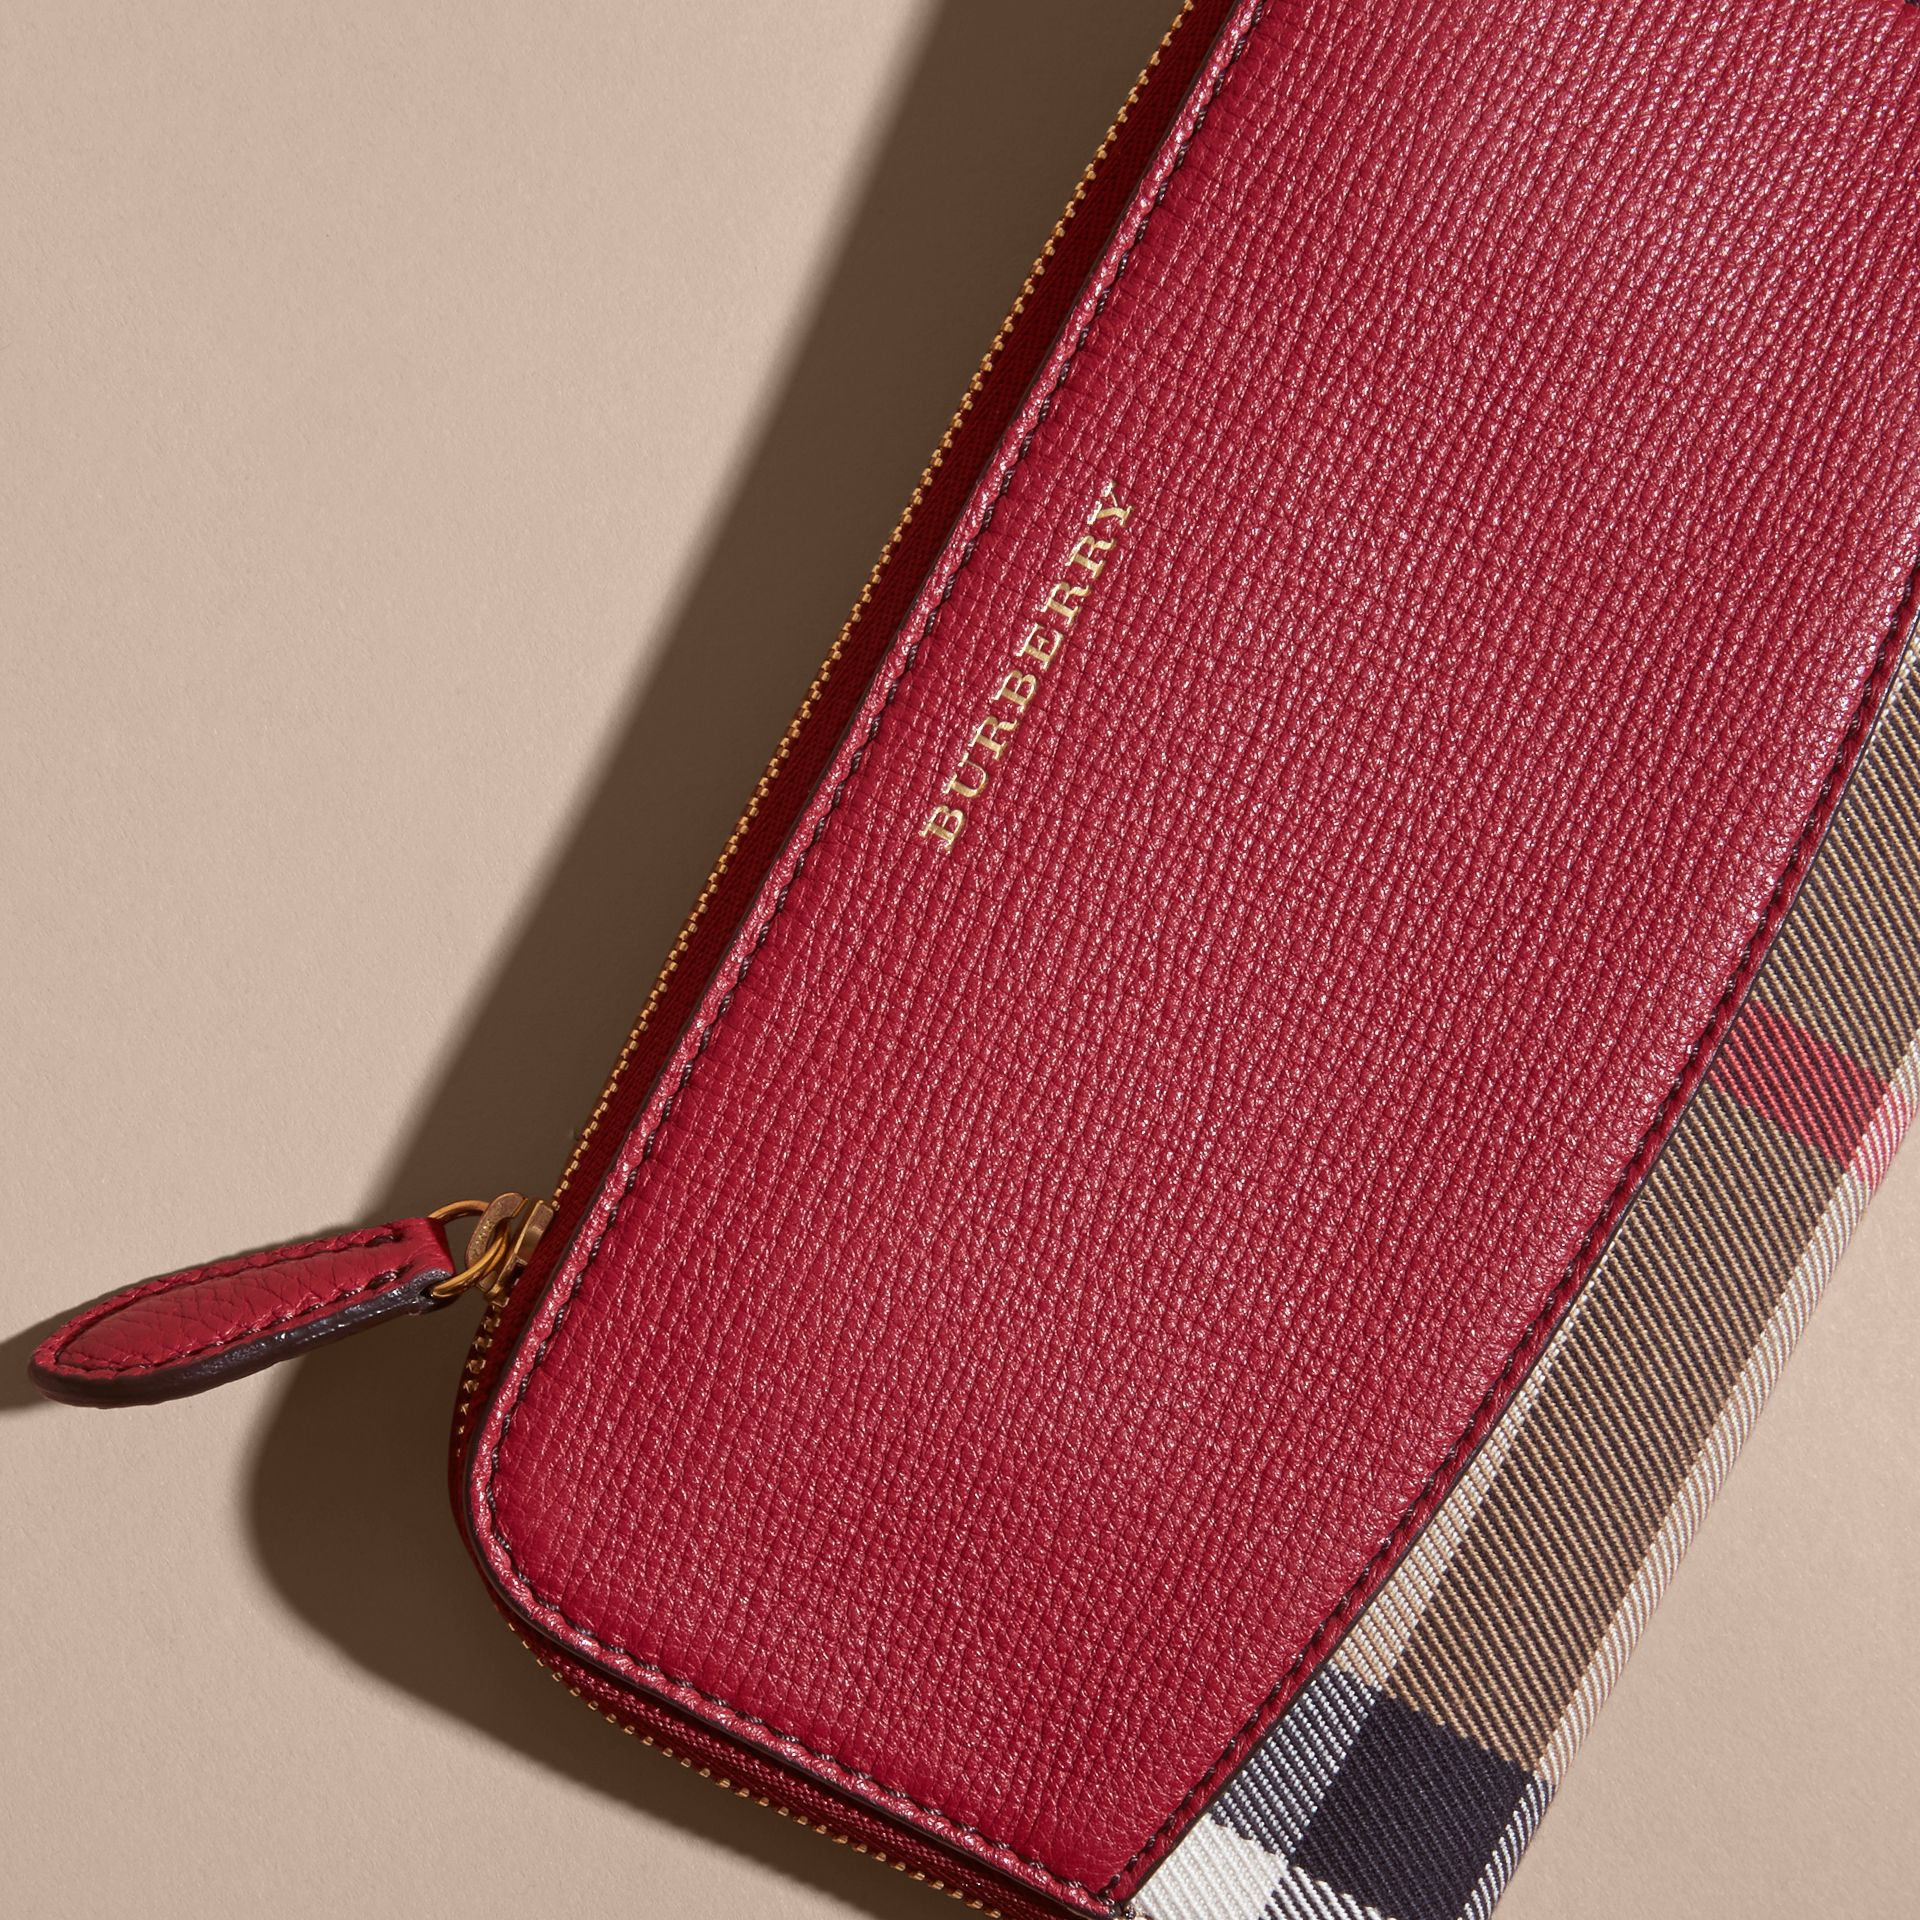 House Check and Leather Ziparound Wallet in Military Red - Women | Burberry - gallery image 4